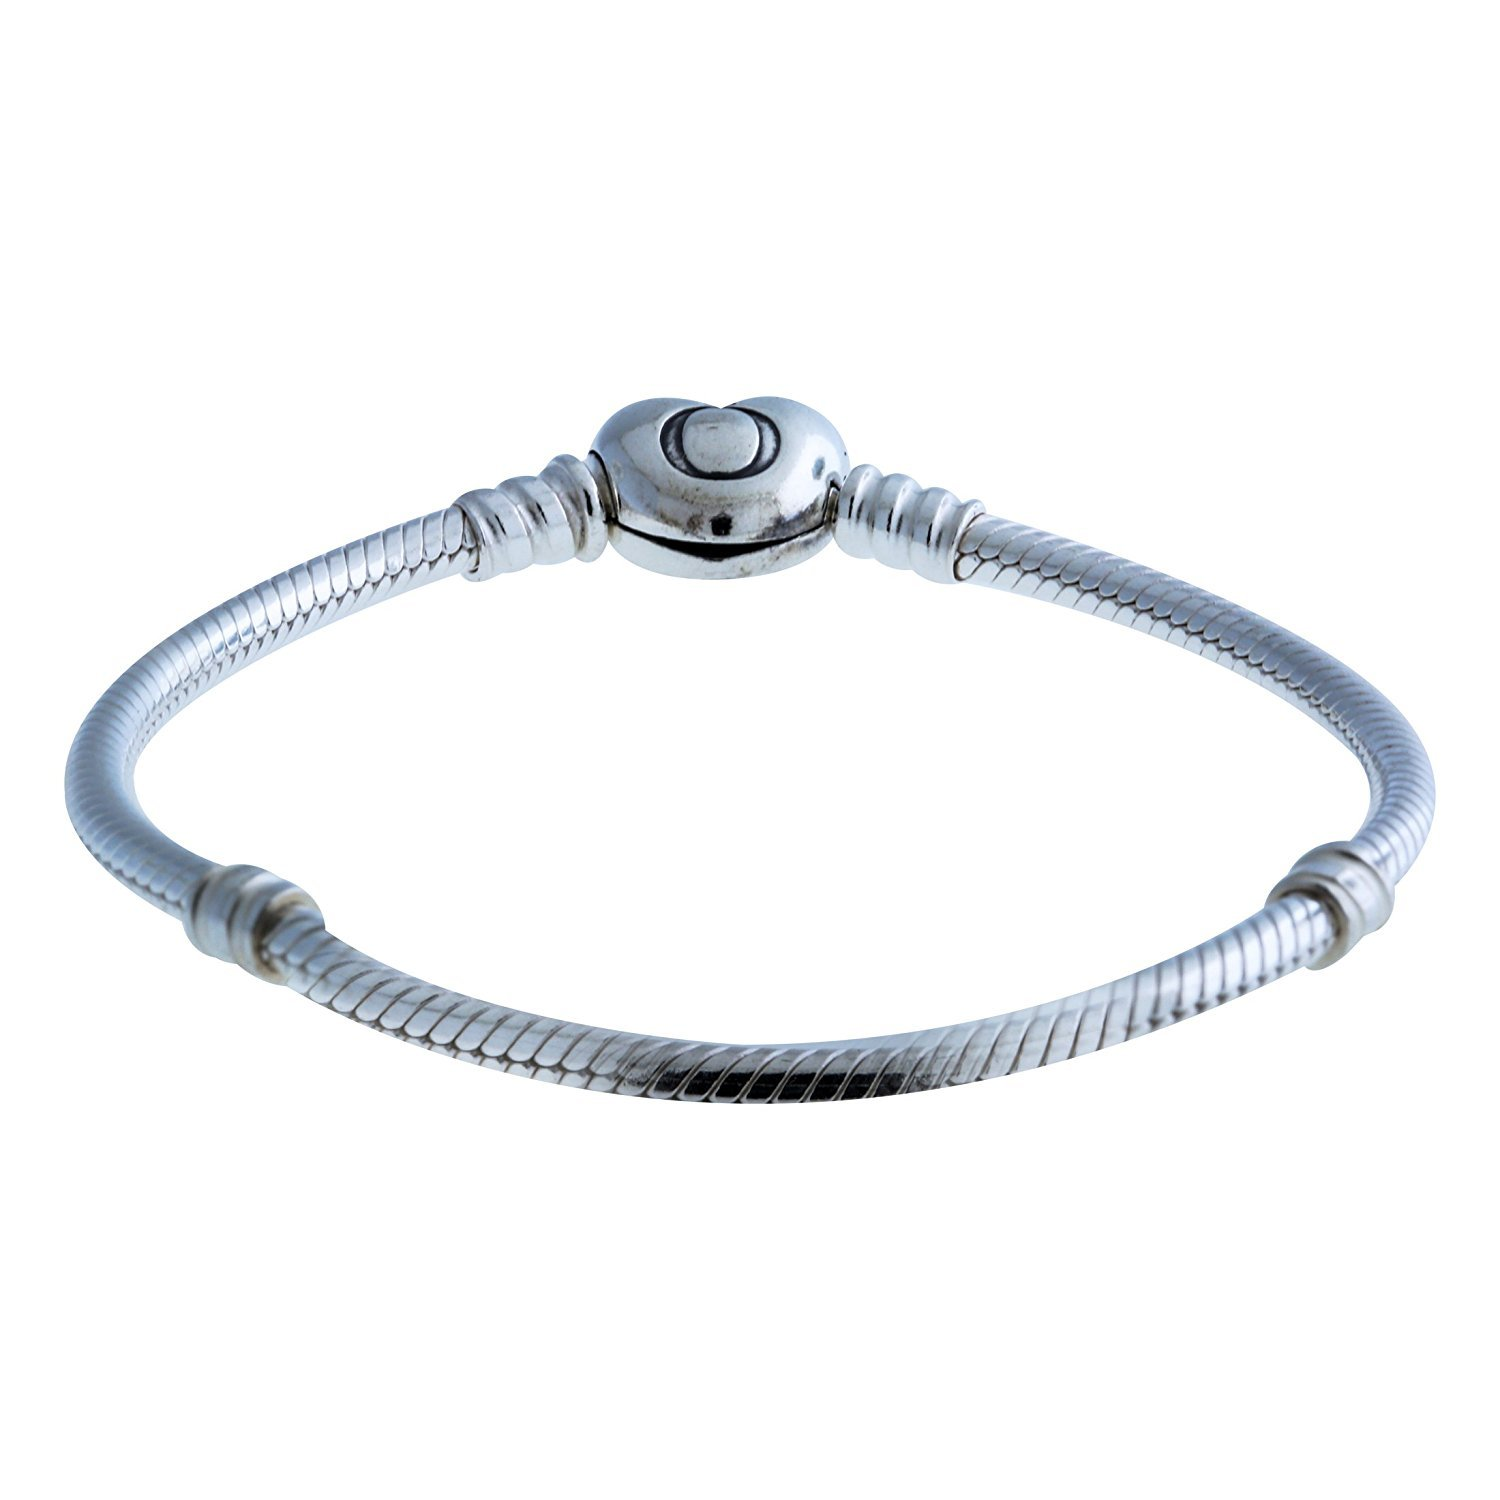 b05d4c297 Get Quotations · PANDORA 590719 Sterling Silver Heart Clasp Bracelet, Gift  Box Included